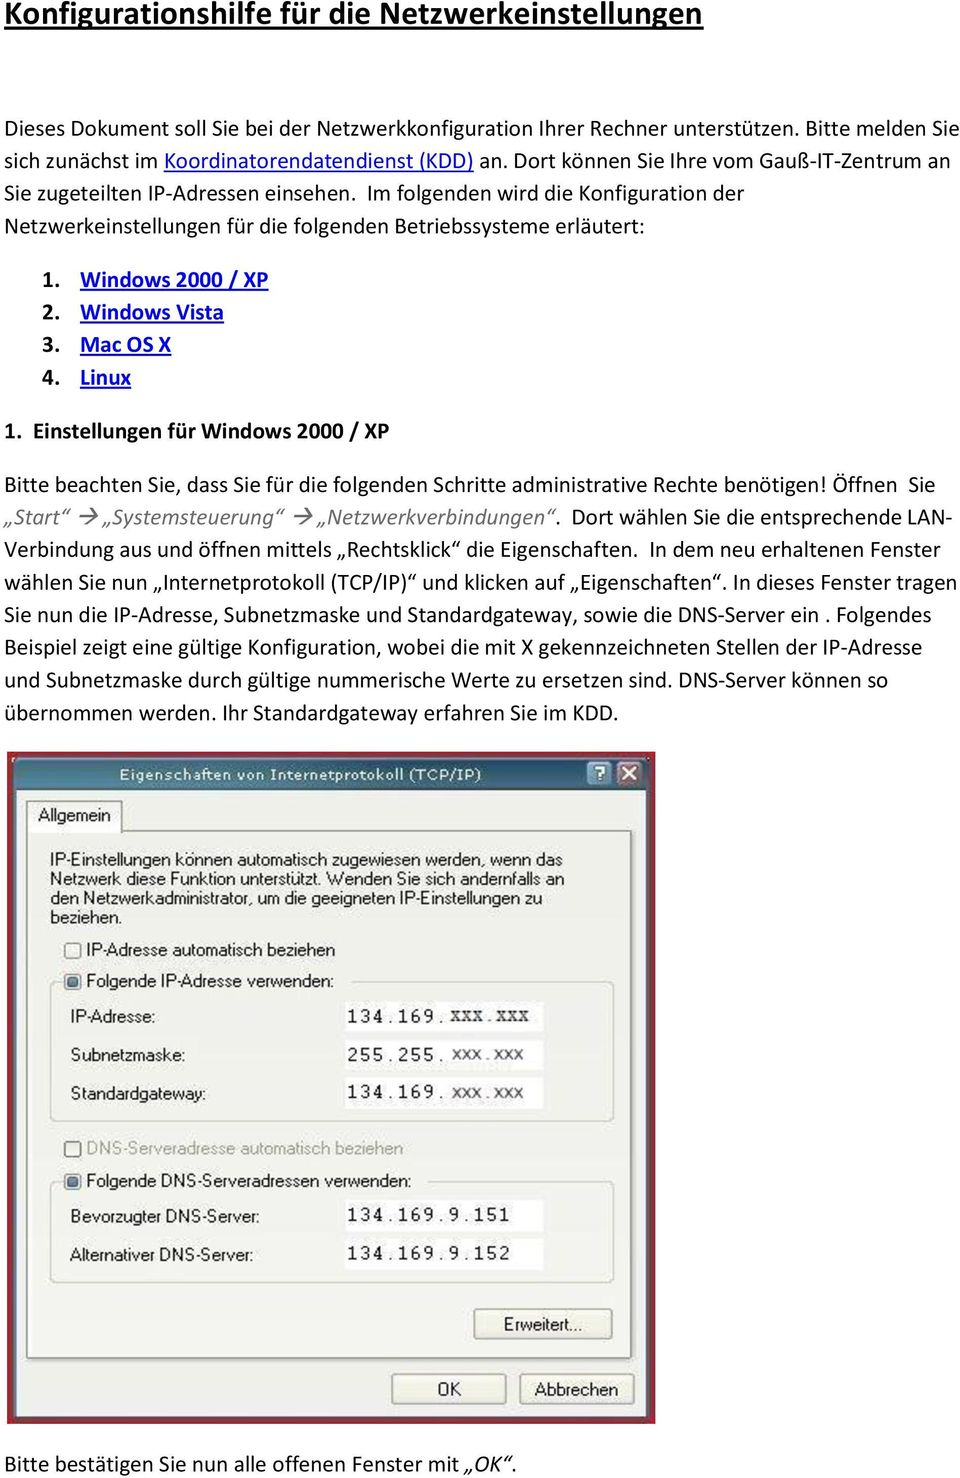 Im folgenden wird die Konfiguration der Netzwerkeinstellungen für die folgenden Betriebssysteme erläutert: 1. Windows 2000 / XP 2. Windows Vista 3. Mac OS X 4. Linux 1.